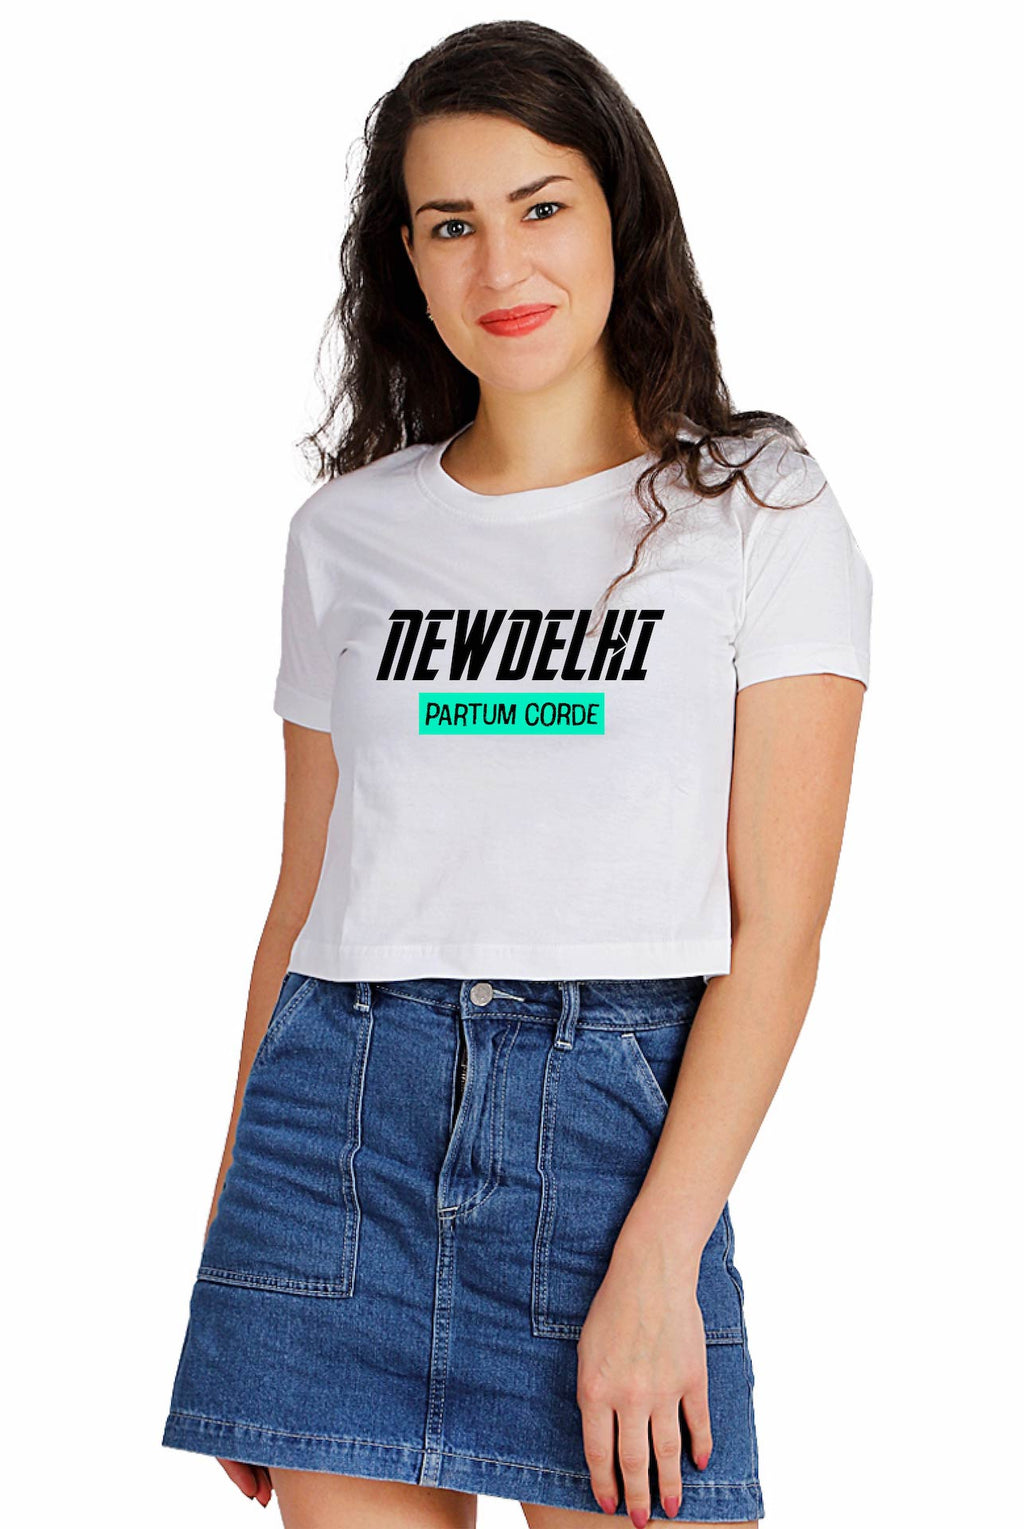 New Delhi Crop Top